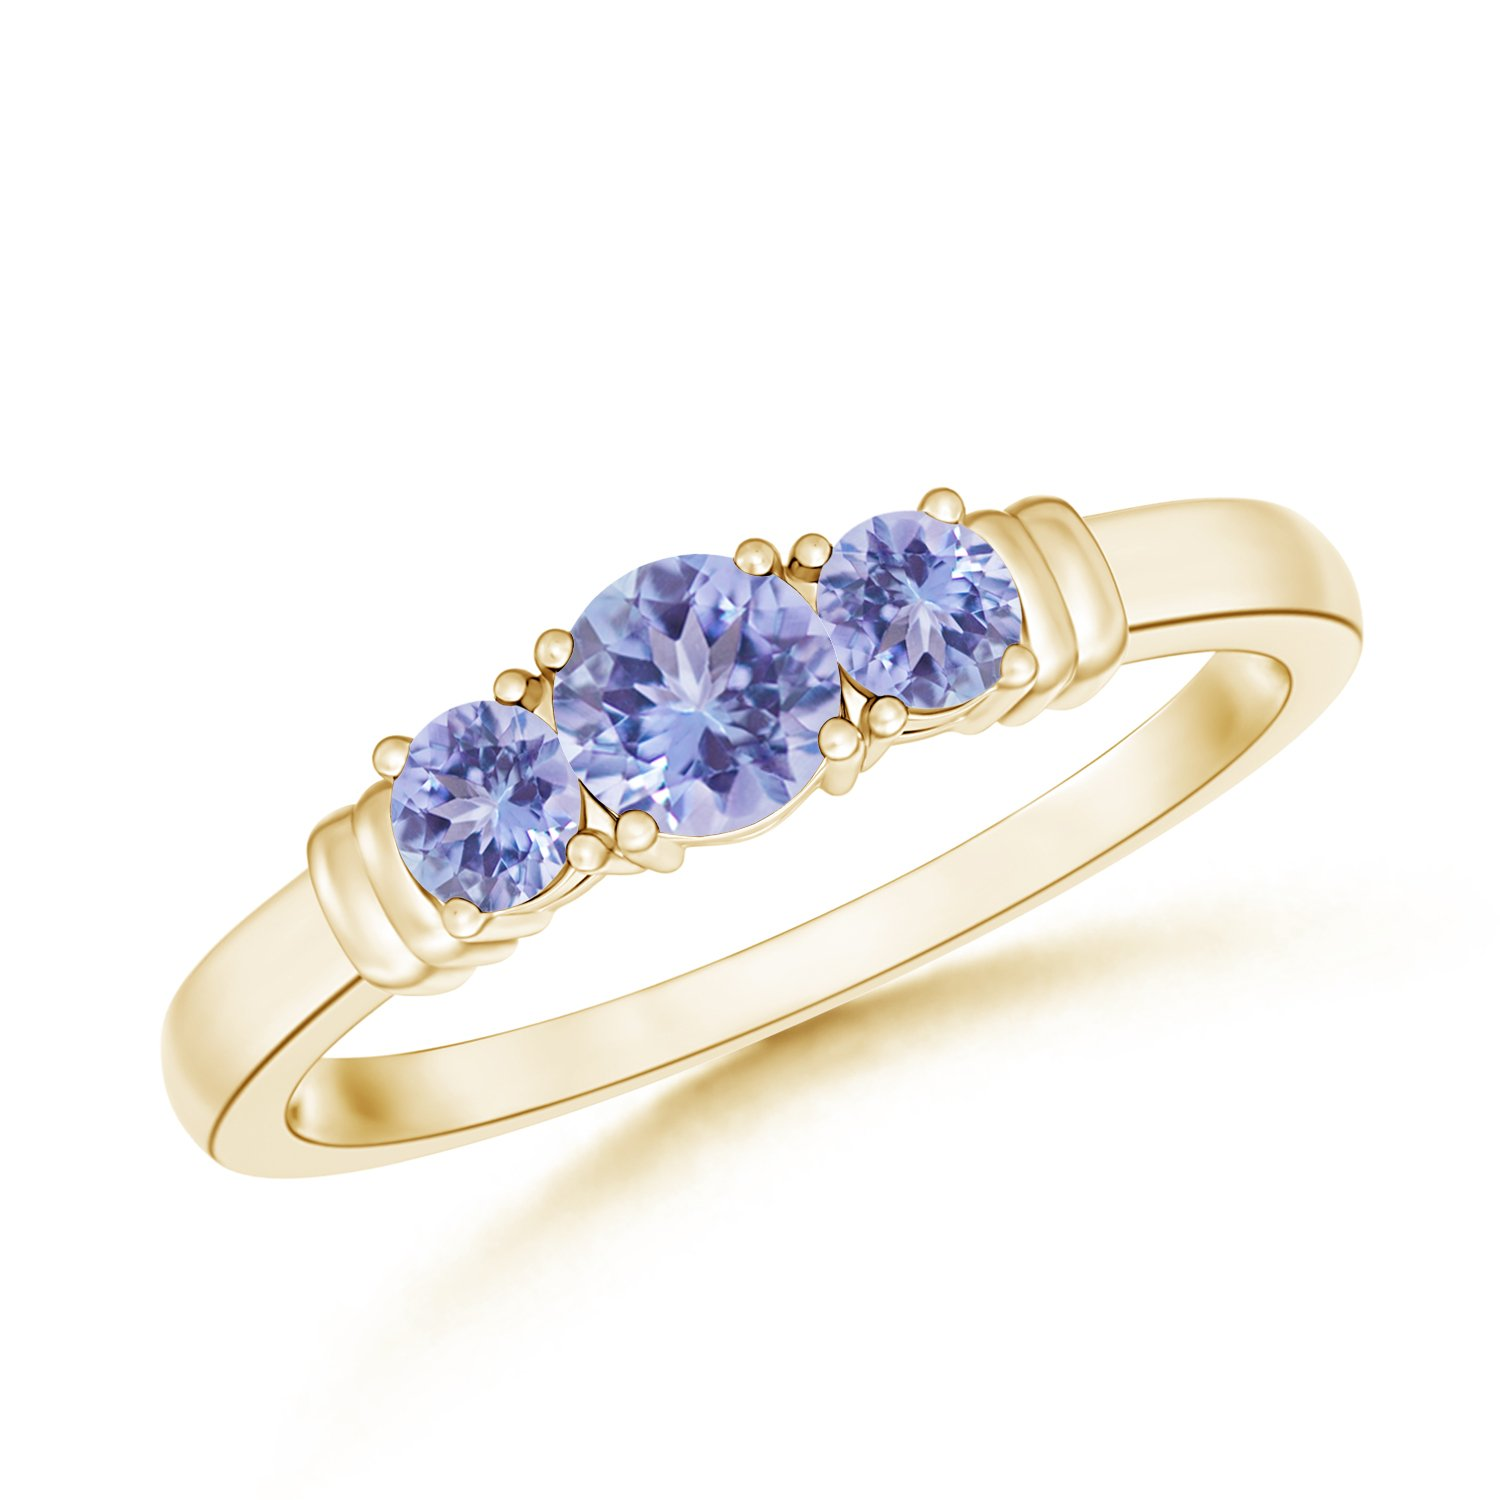 December Birthstone - Vintage Style Three Stone Tanzanite Wedding Ring for Women in 14K Yellow Gold (4mm Tanzanite) by Angara.com